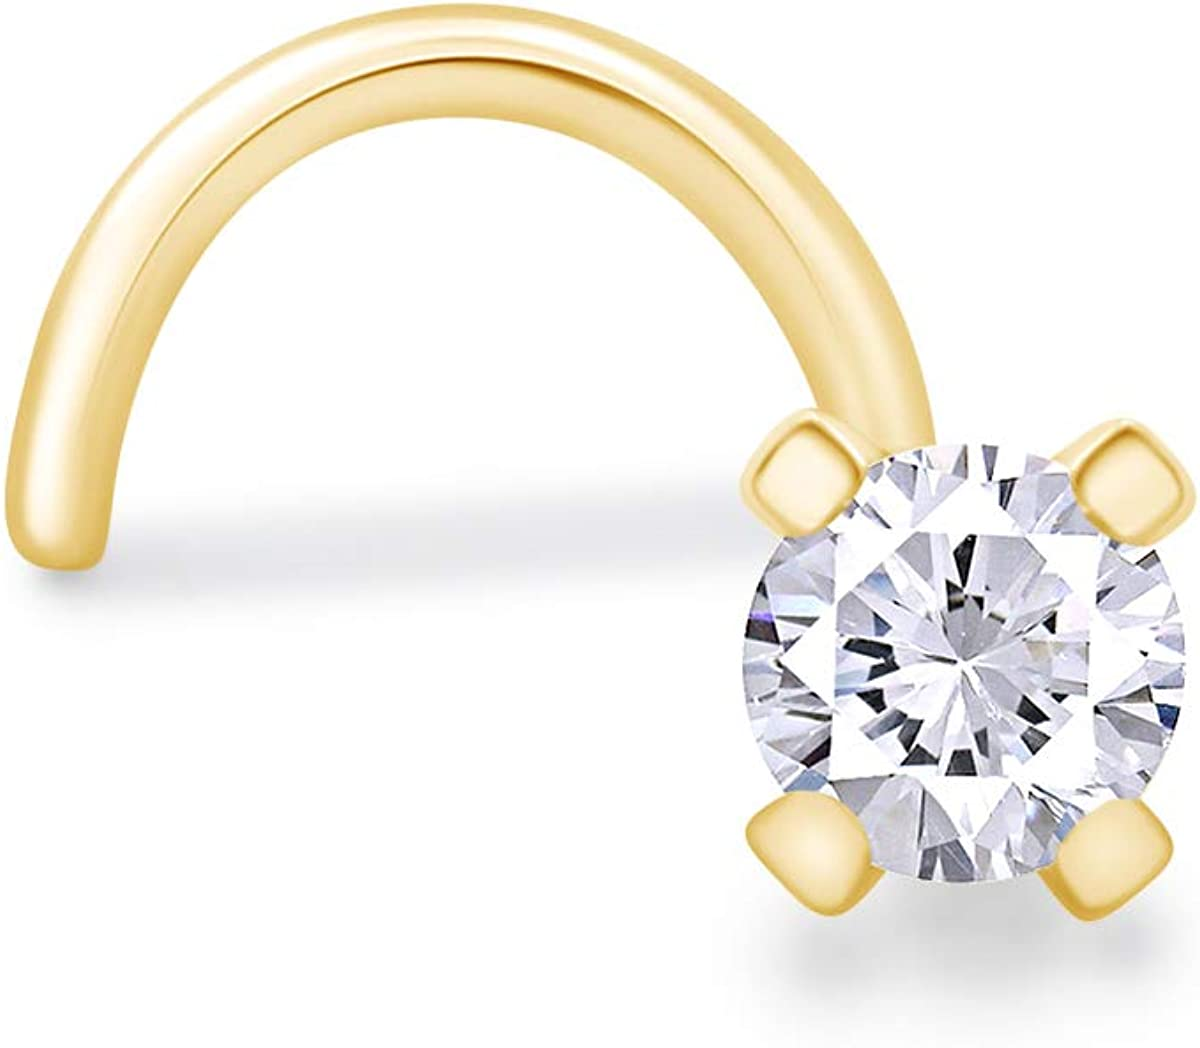 14K Solid Gold 22G Nose Stud Ring Jewelry 1.5 Zirconia High order 2 Cubic 1 Cheap SALE Start